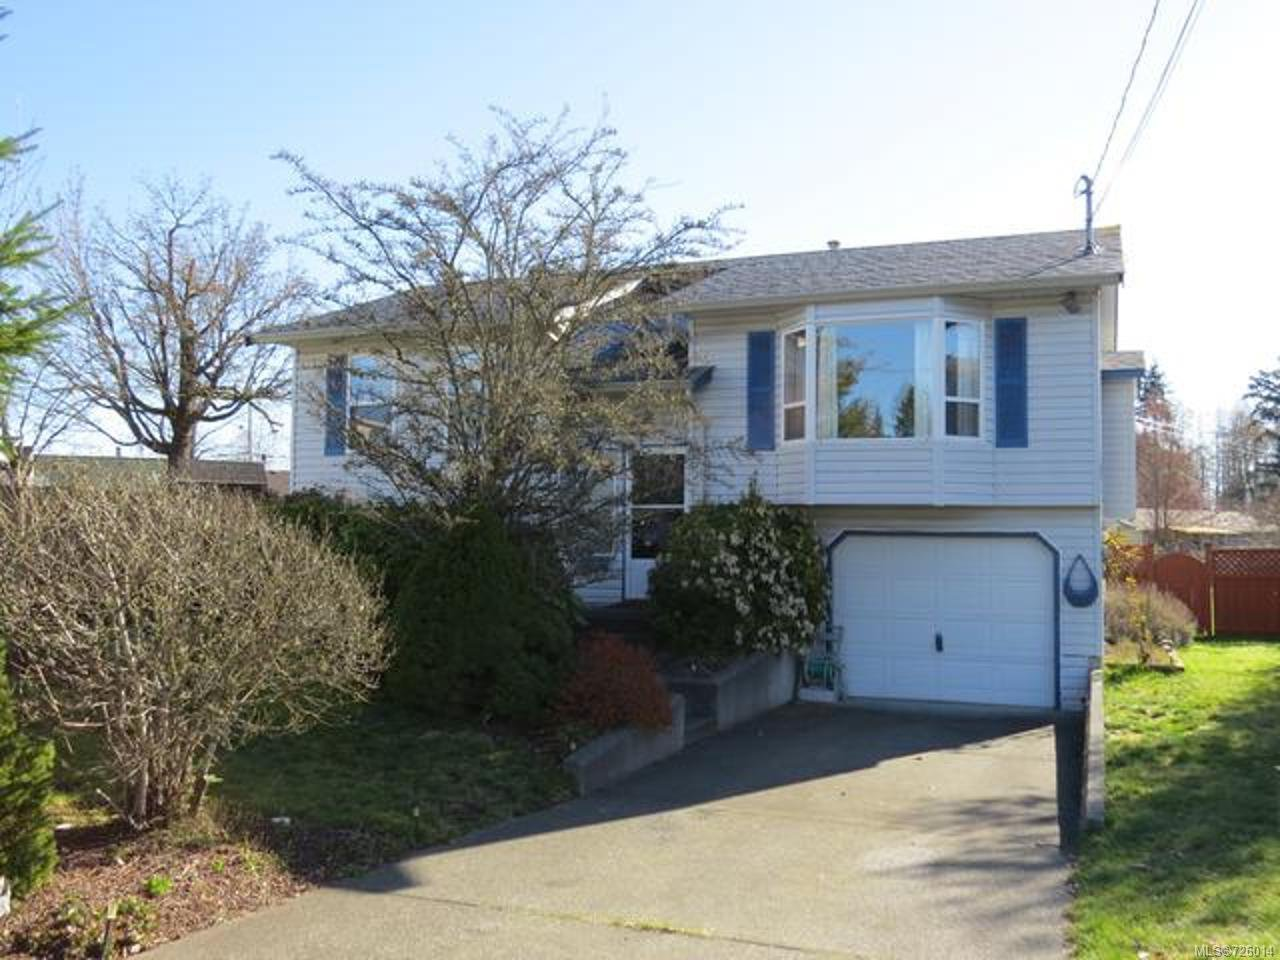 Main Photo: 168 MITCHELL PLACE in COURTENAY: CV Courtenay City House for sale (Comox Valley)  : MLS®# 726014